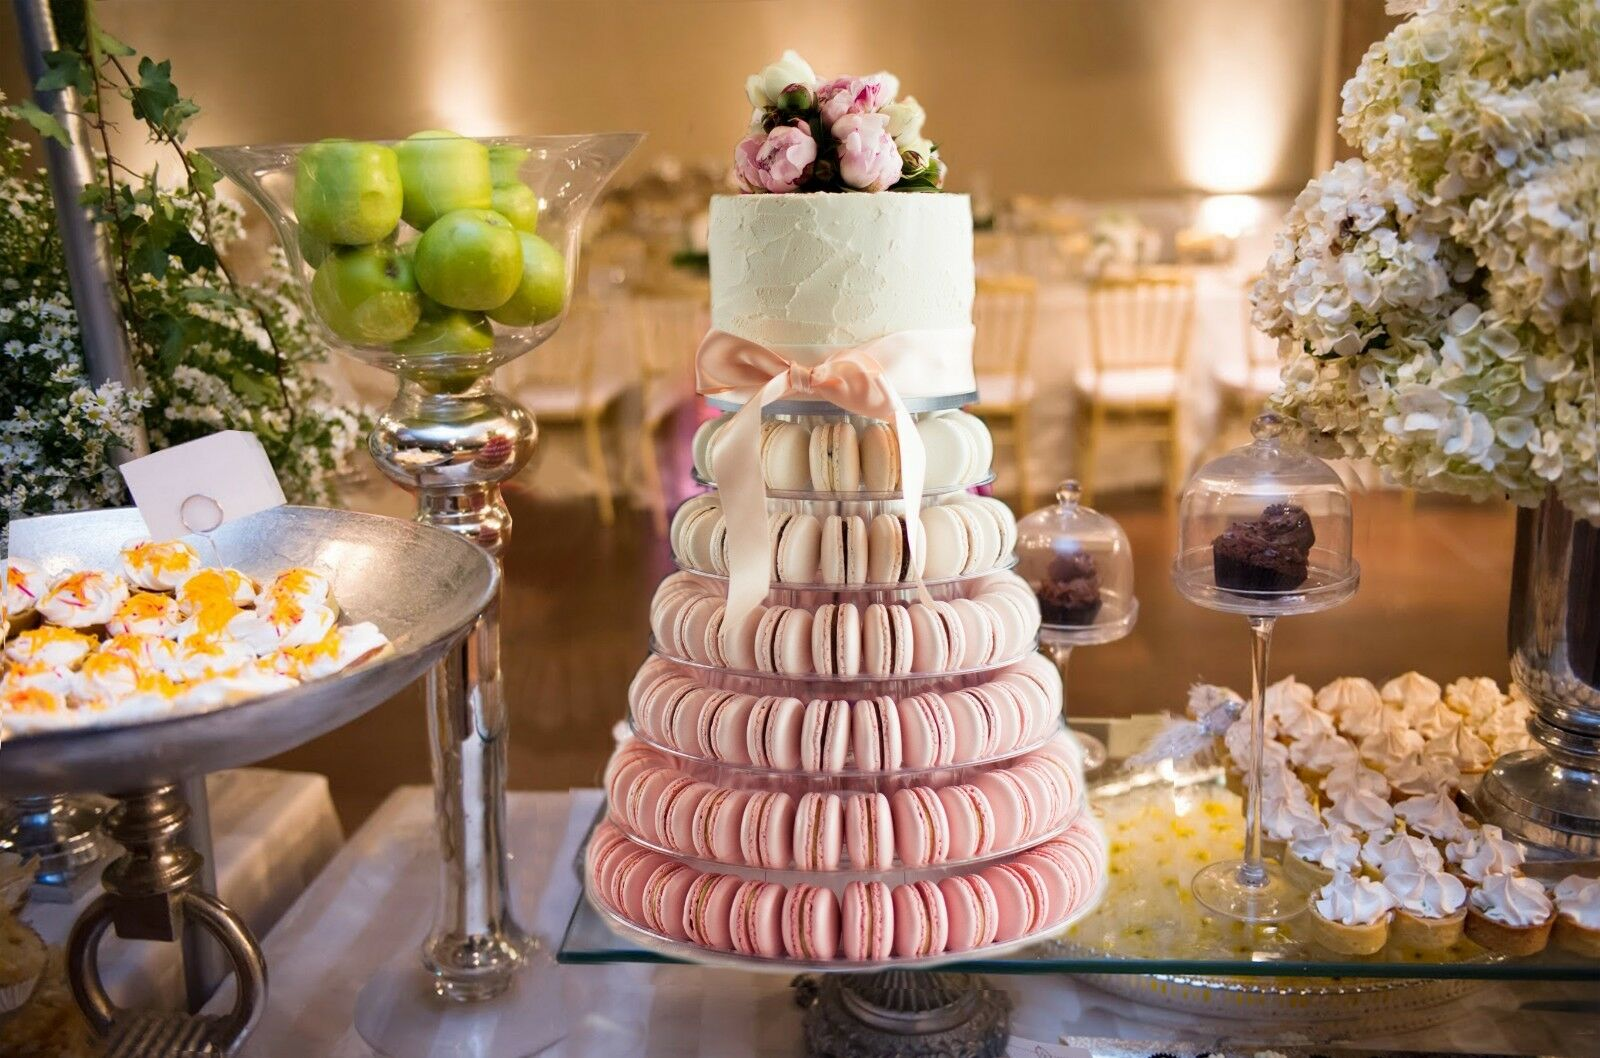 6 Tier Macaron Tower Cake Stand with Cake Plate Topper